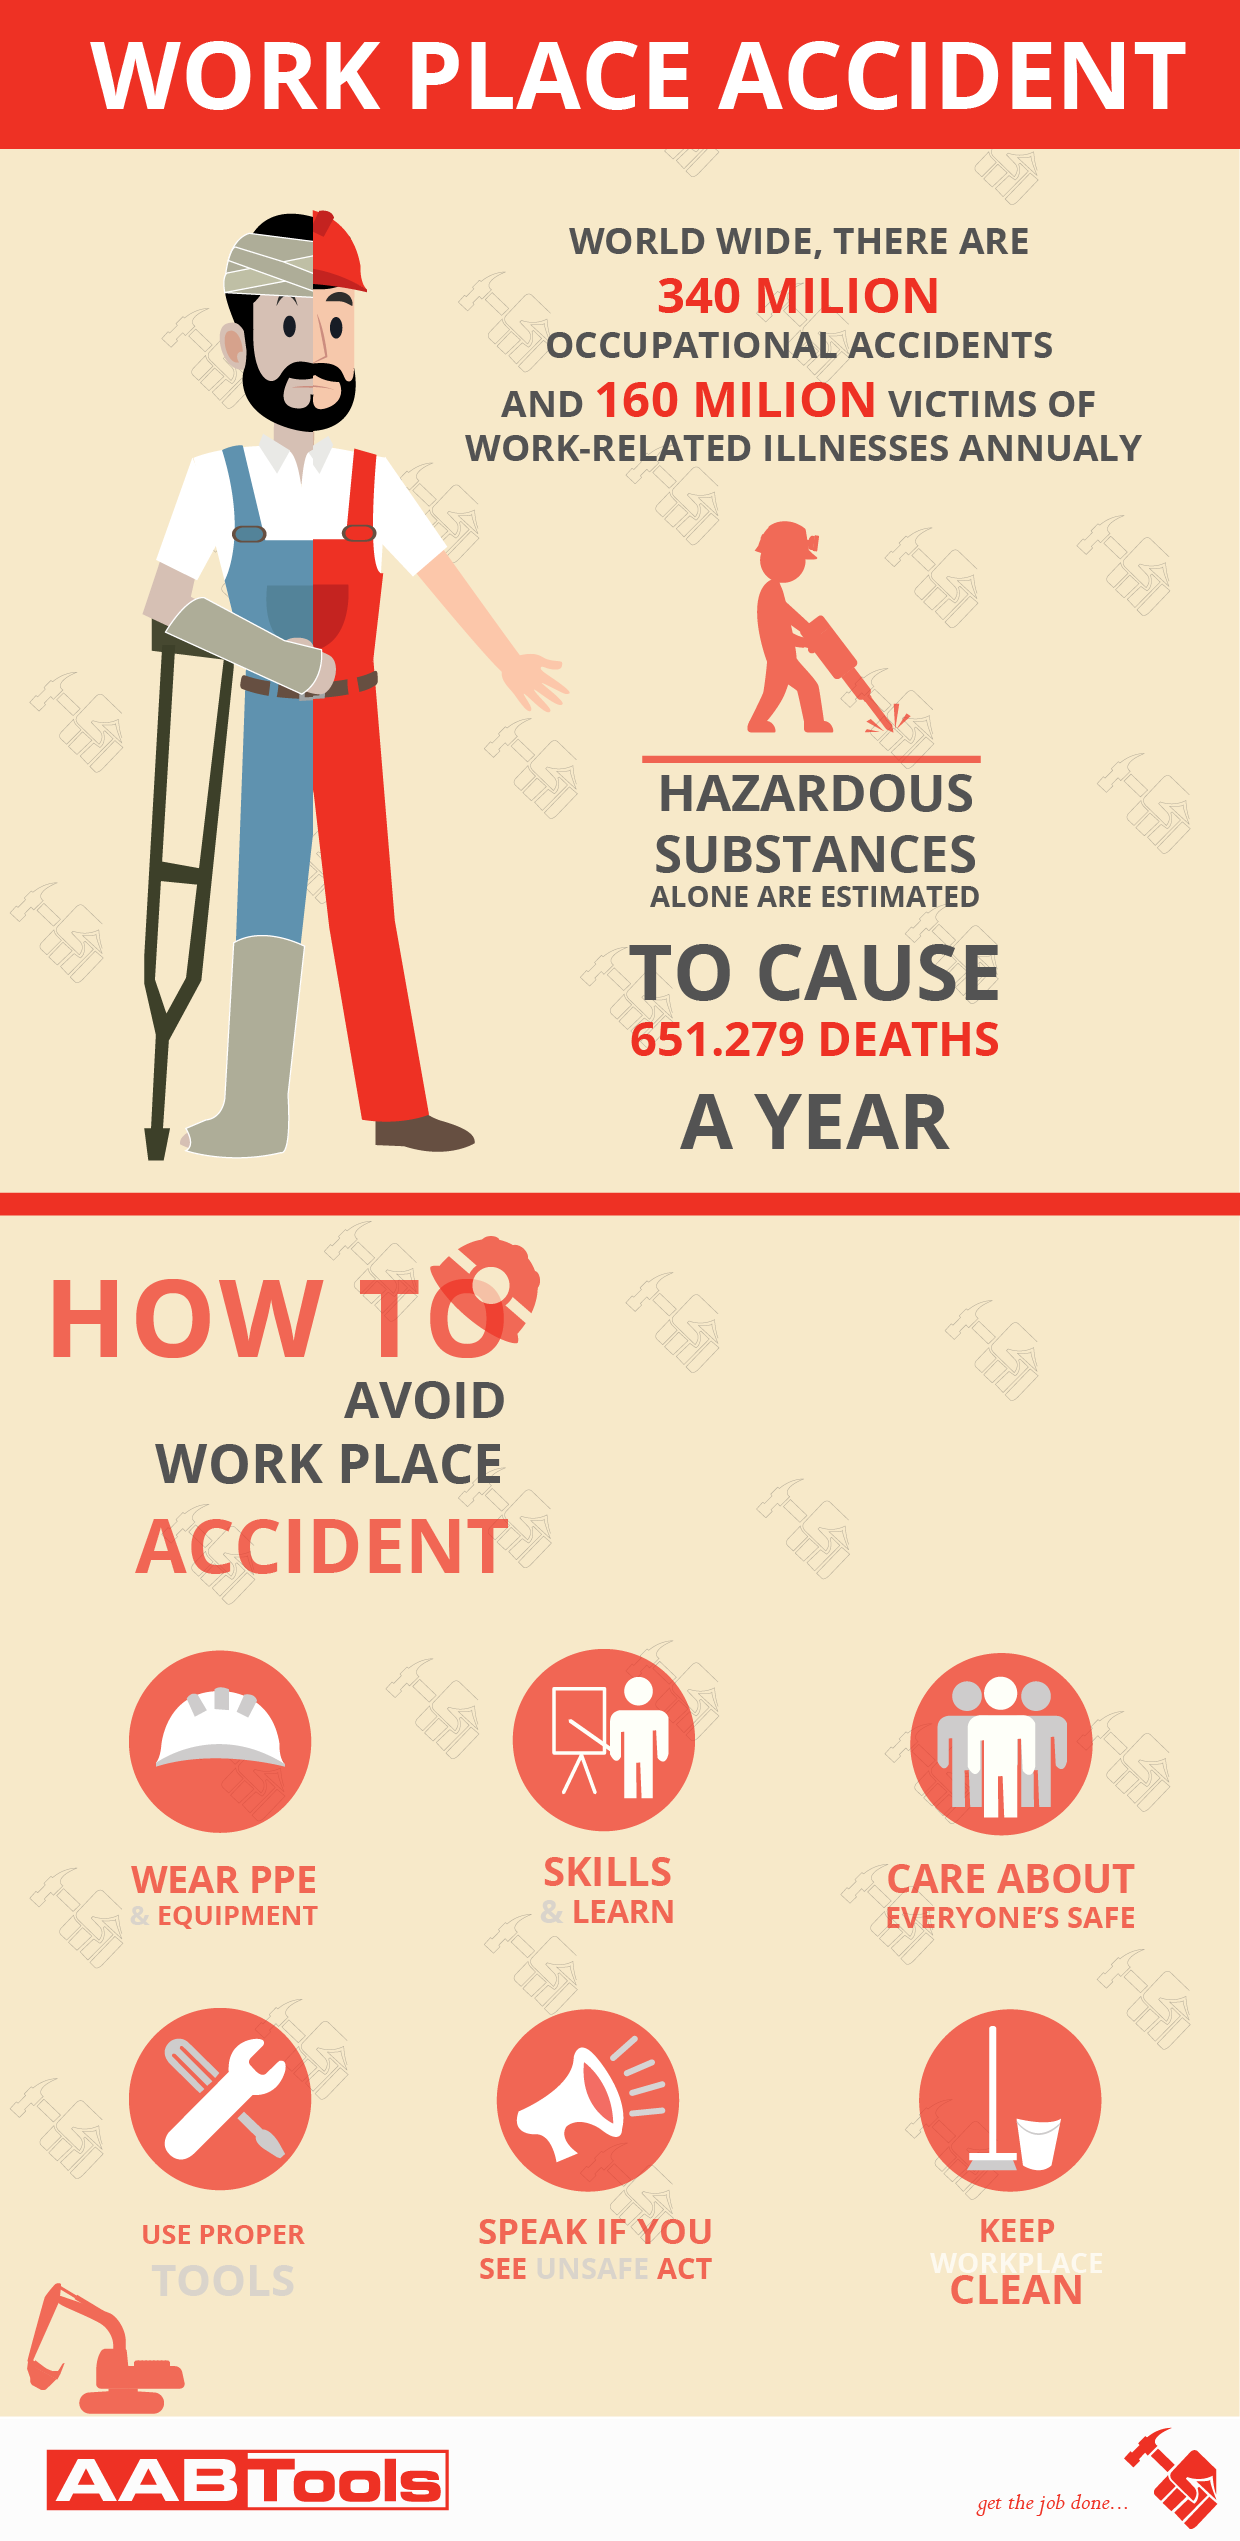 Safety Starts With You Safety Posters Health And Safety Poster Workplace Safety